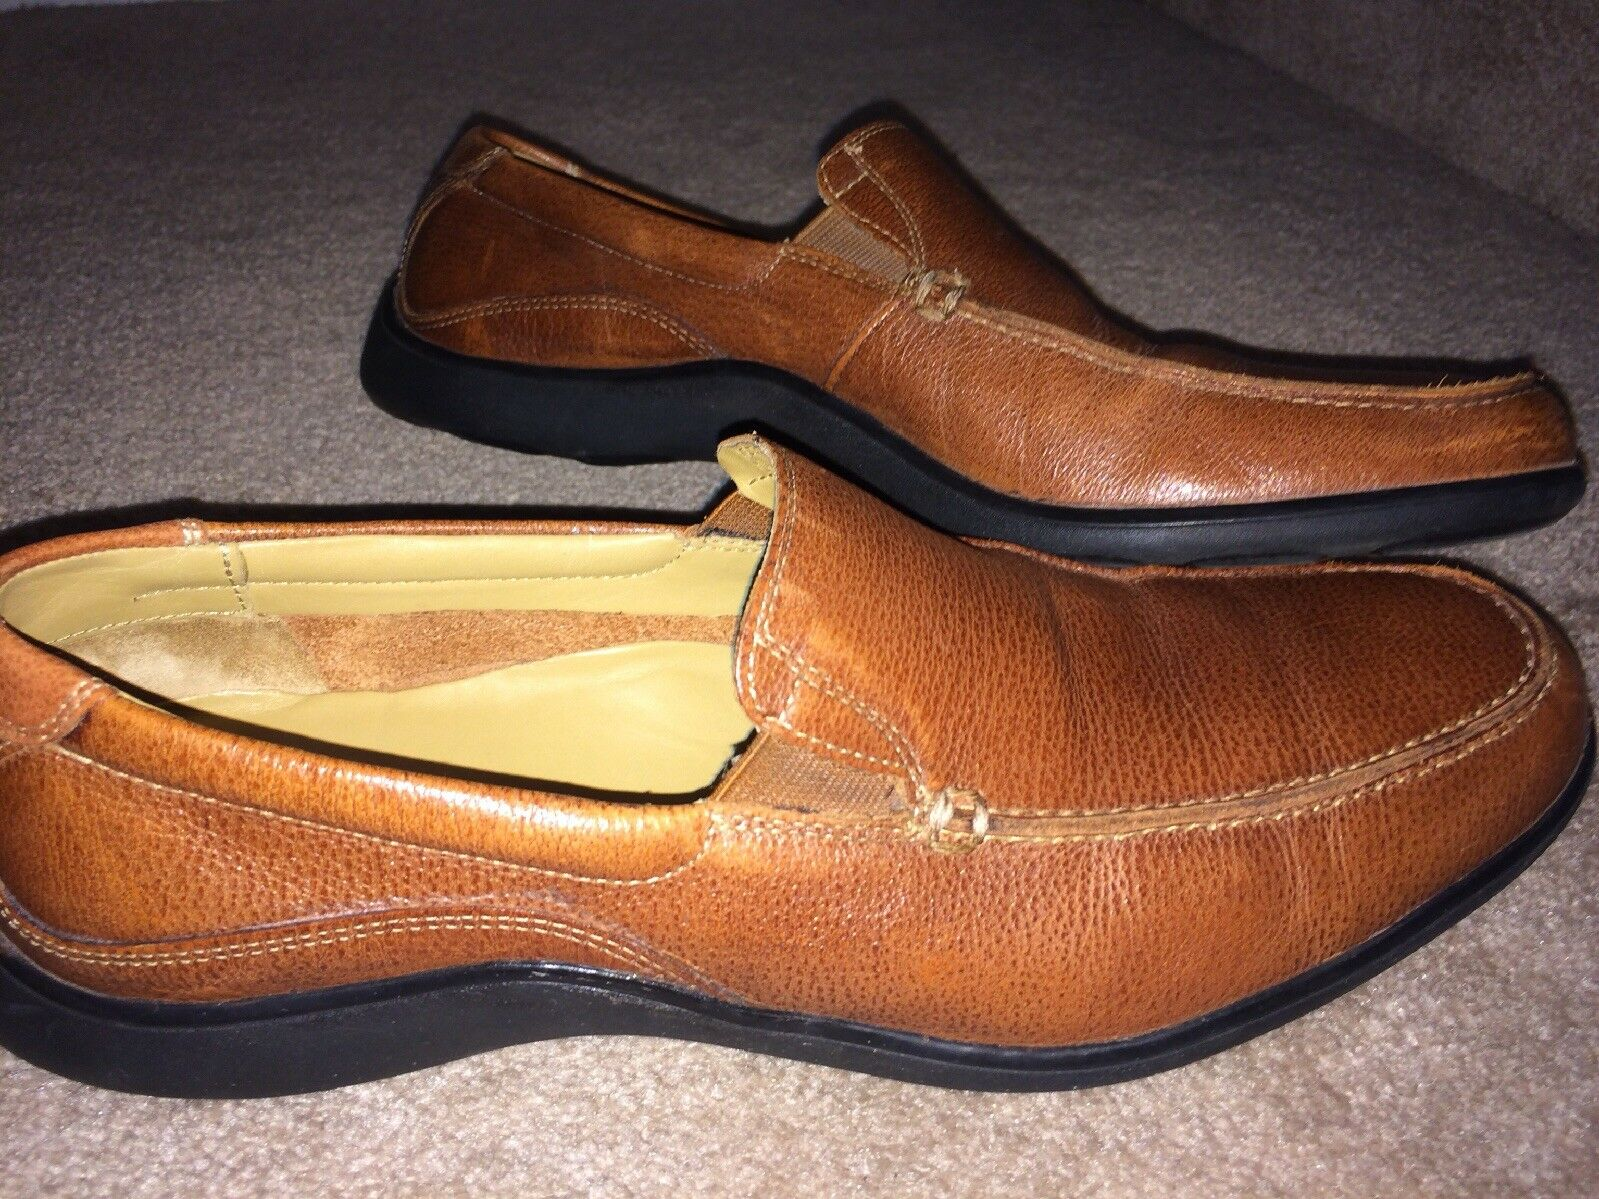 Cole Haan Shoes Men's M Brown Leather Loafer 10 M Men's Comfort Casual Slip On 3cecc9